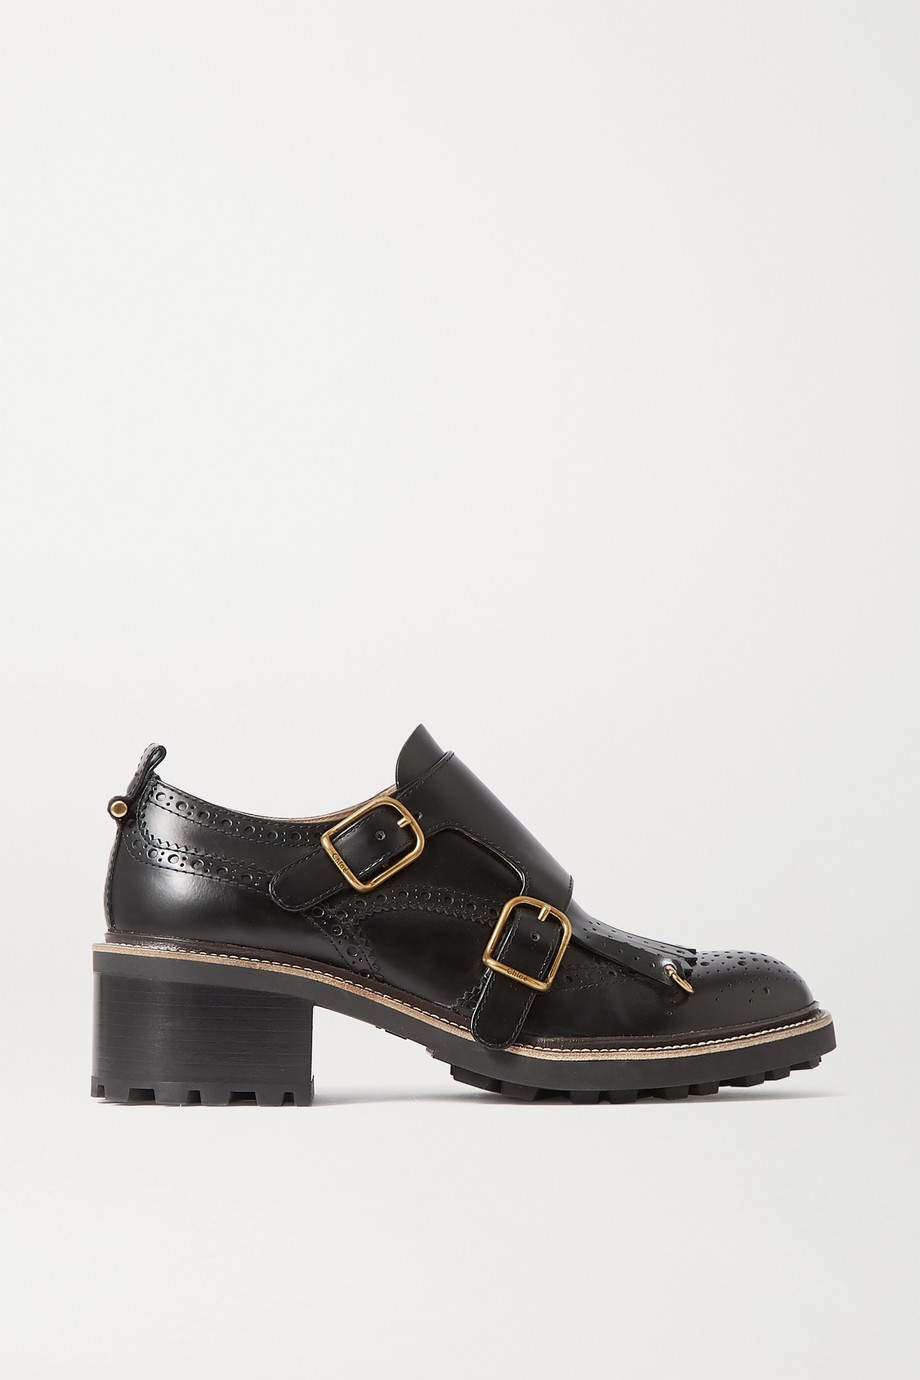 CHLOÉ Franne leather brogues